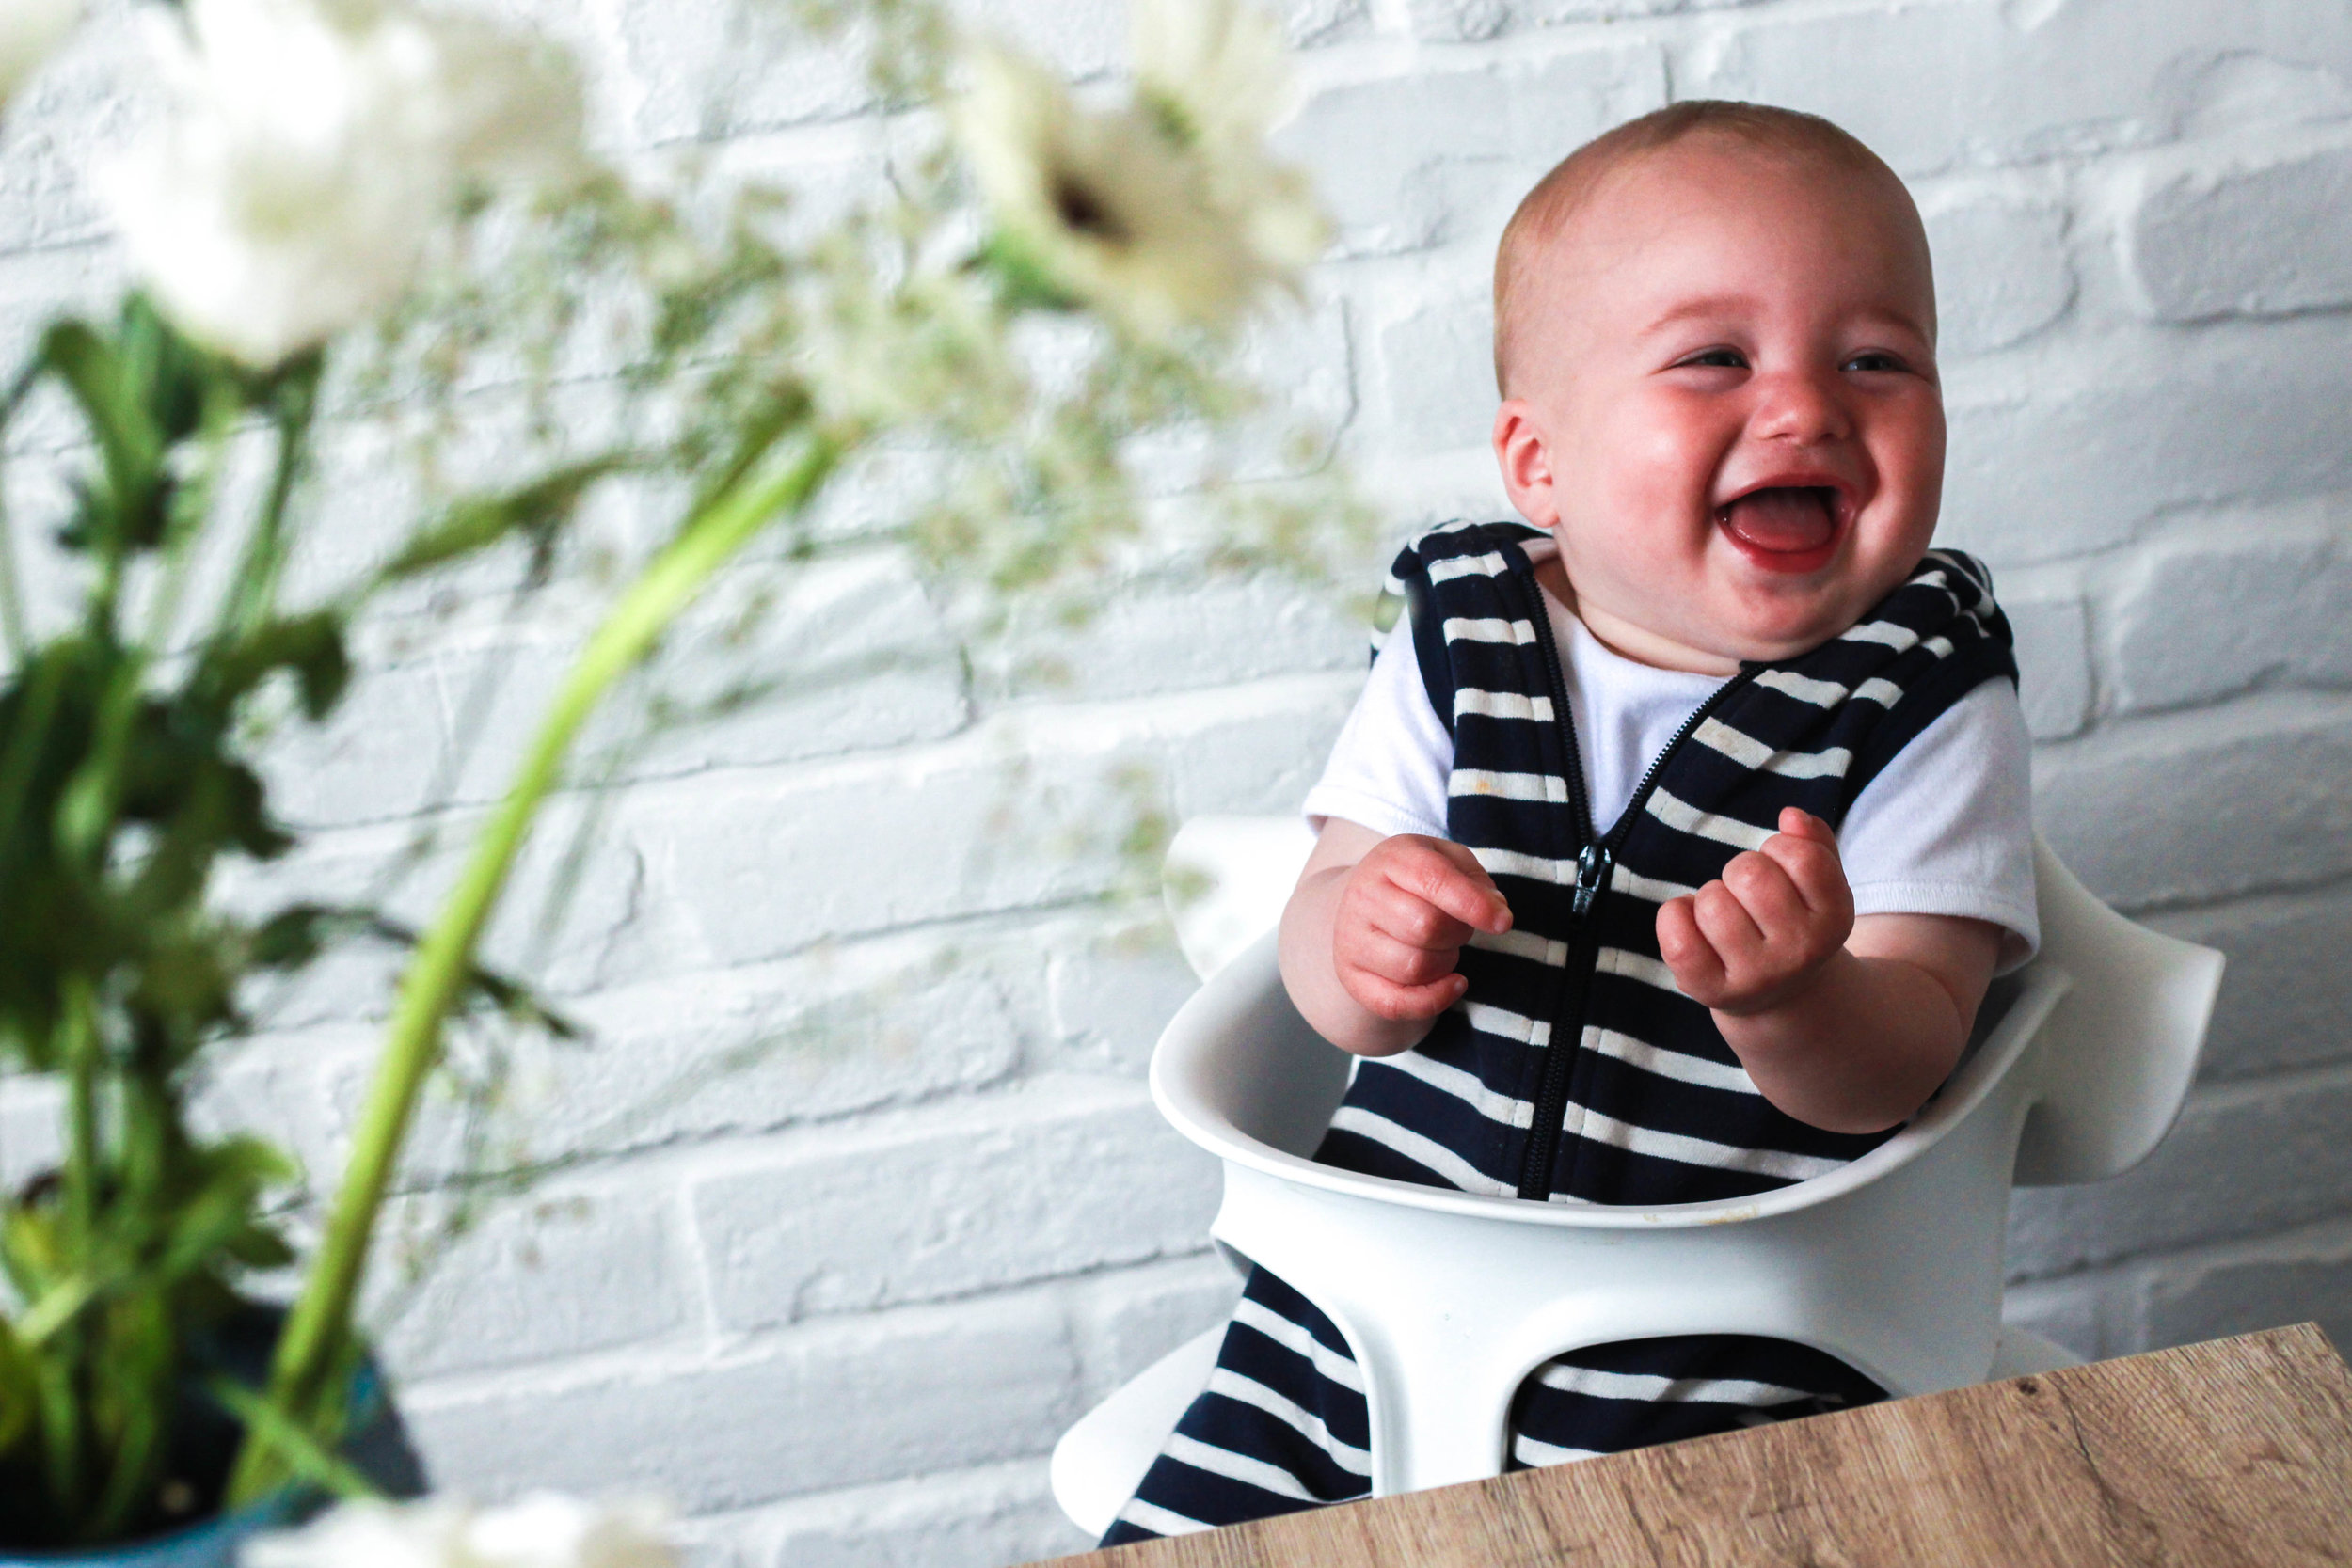 life lessons toddlers teach Baby laughing in noms high chair at table with plants